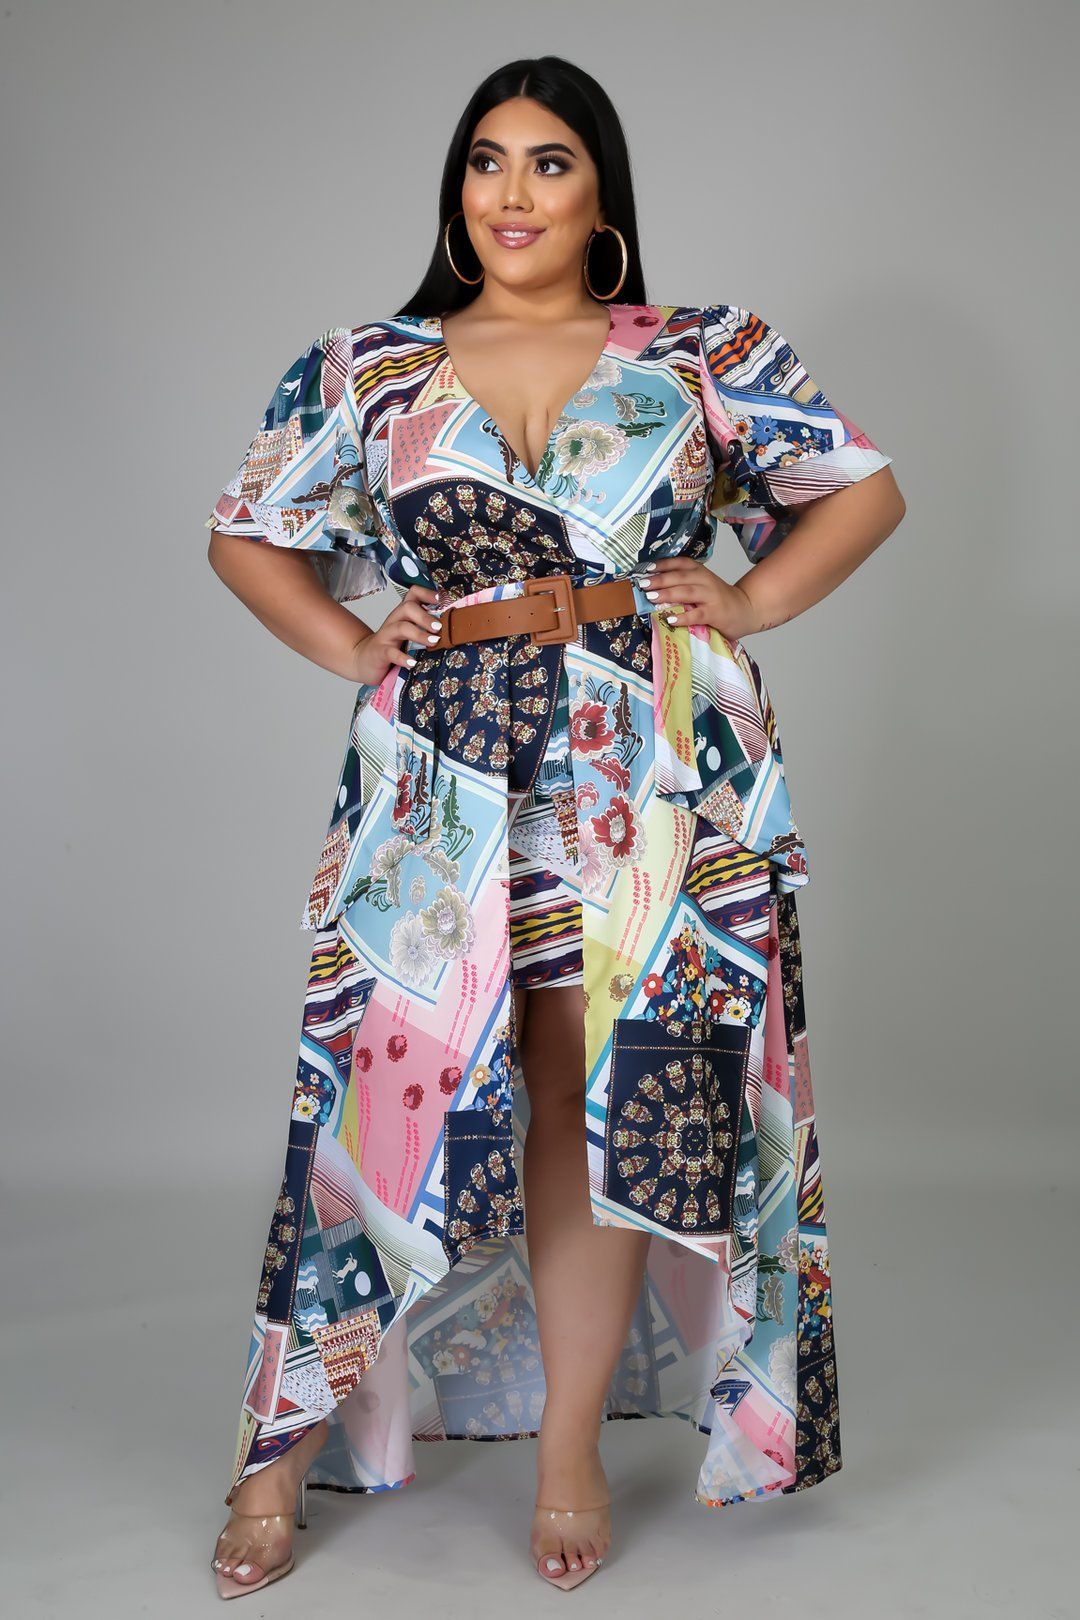 Don T Call My Name Dress Plus Size Maxi Dresses Dresses Summer Dress Outfits [ 1620 x 1080 Pixel ]